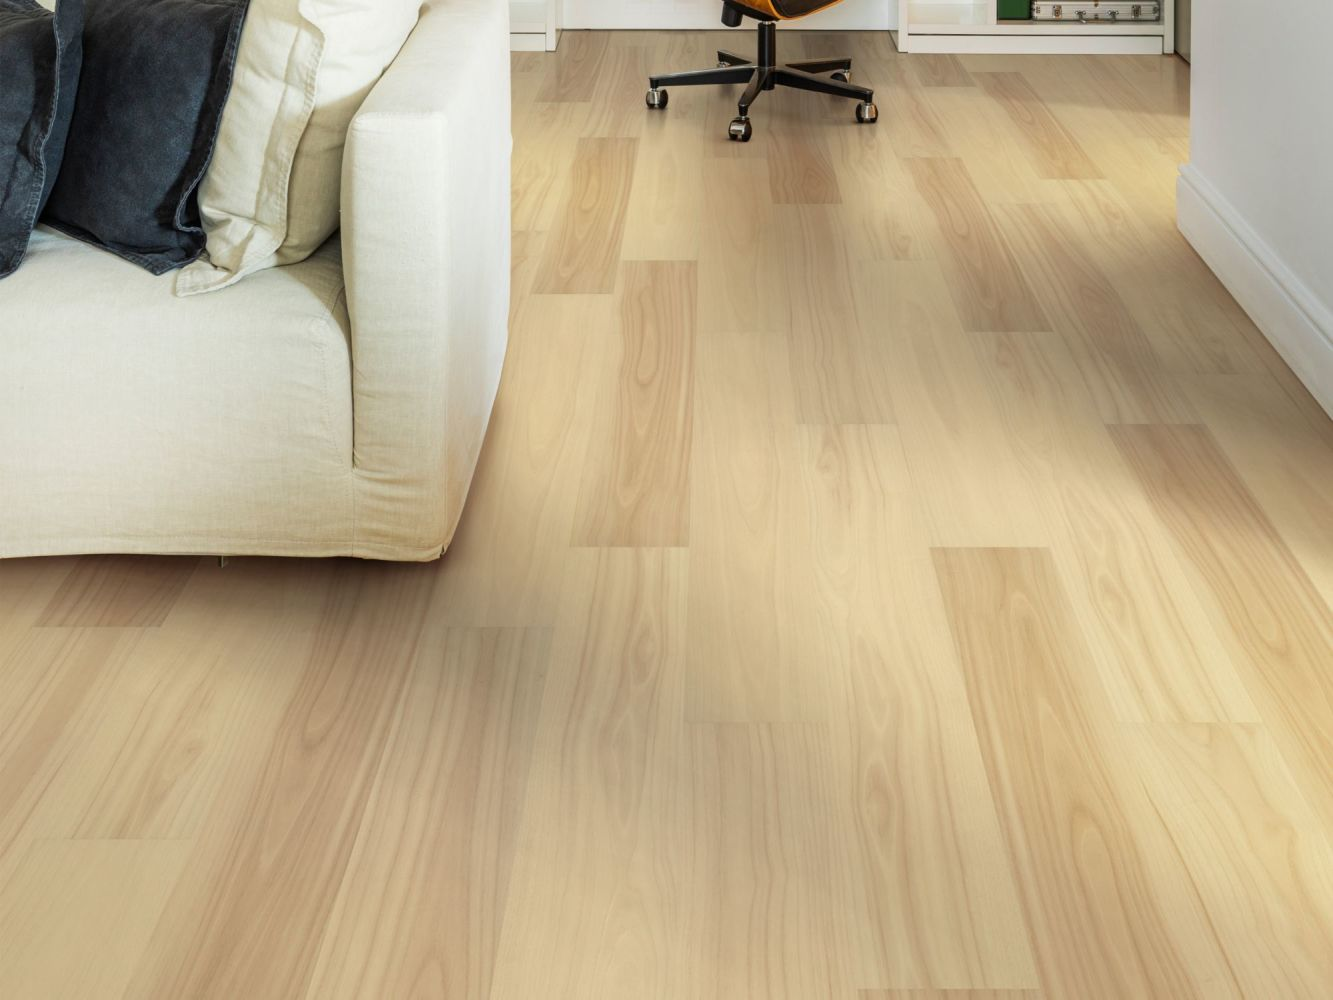 Shaw Floors Resilient Residential Pantheon Hd+ Natural Bevel Marzipan 02044_1051V